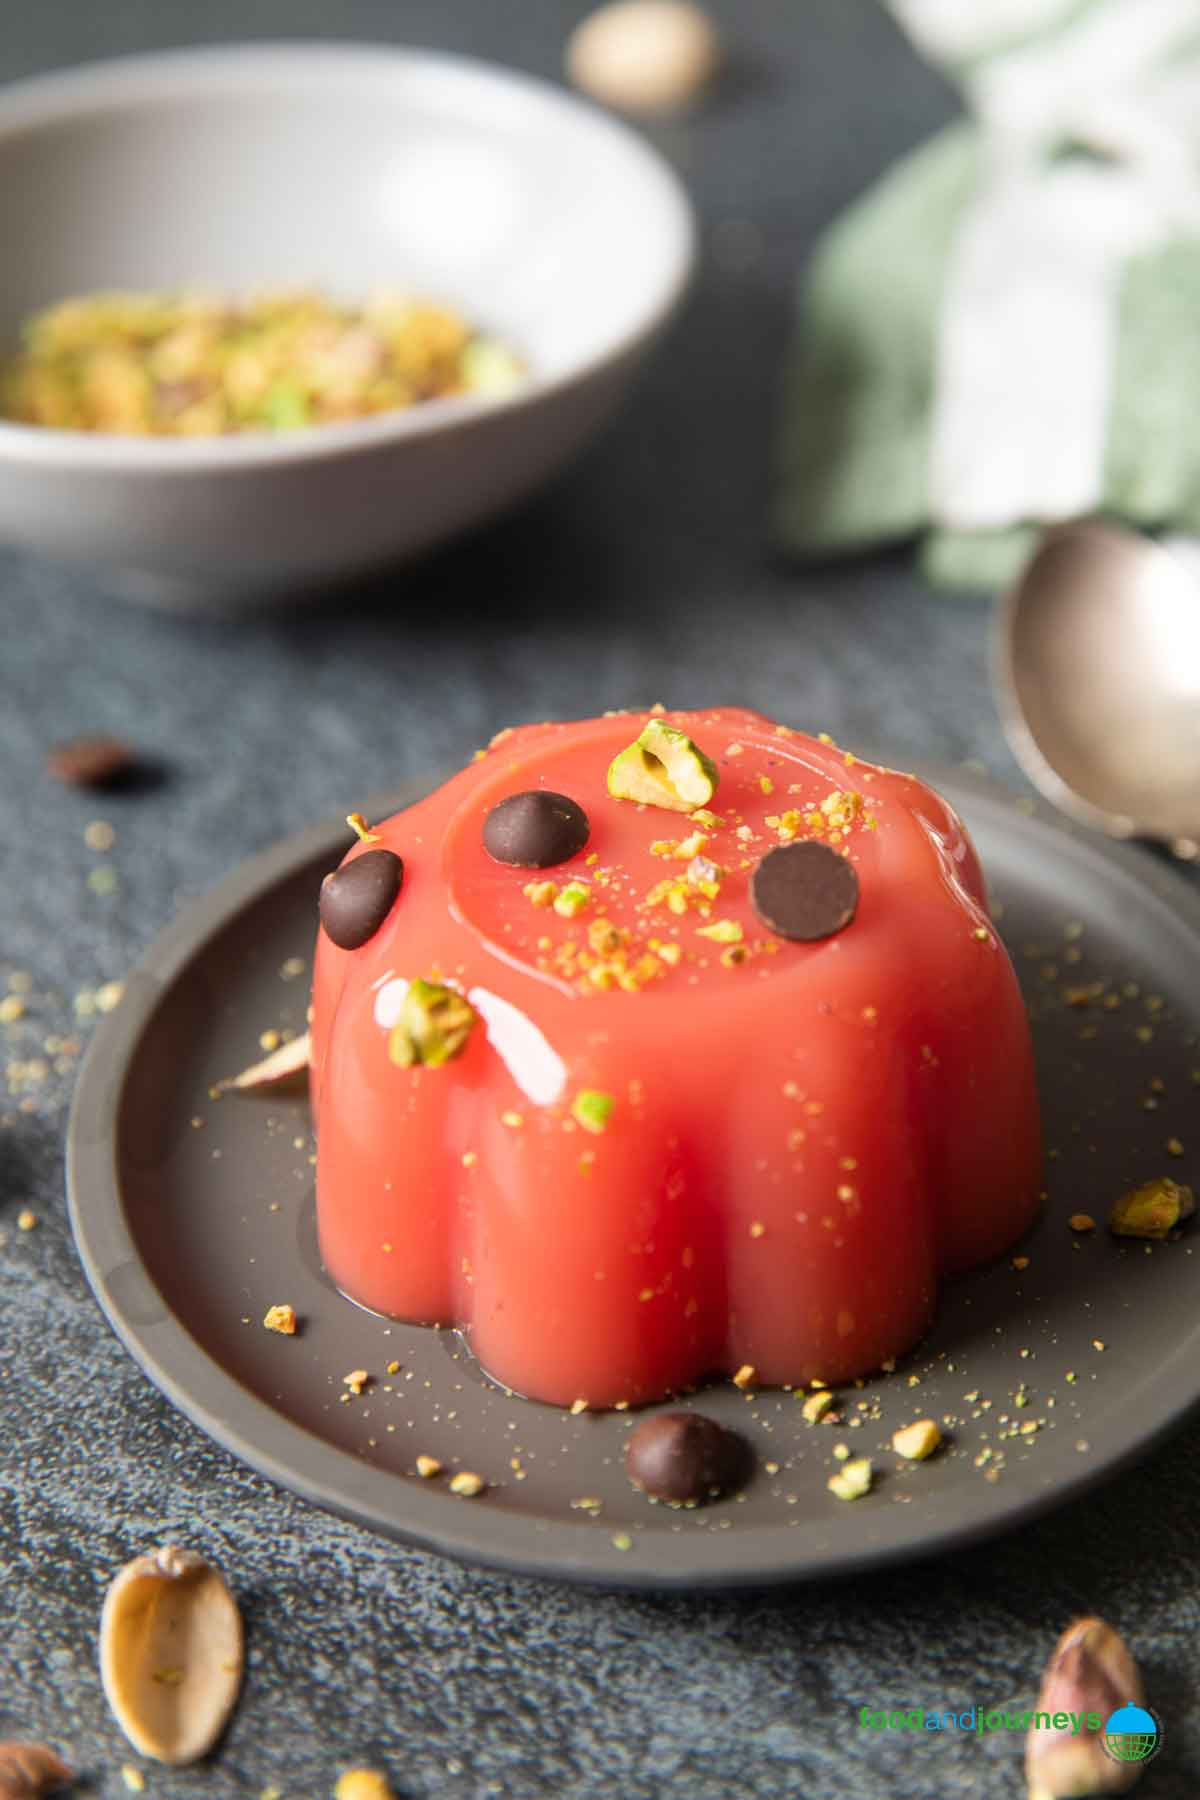 A serving of Sicilian watermelon jelly with pistachios in the background.